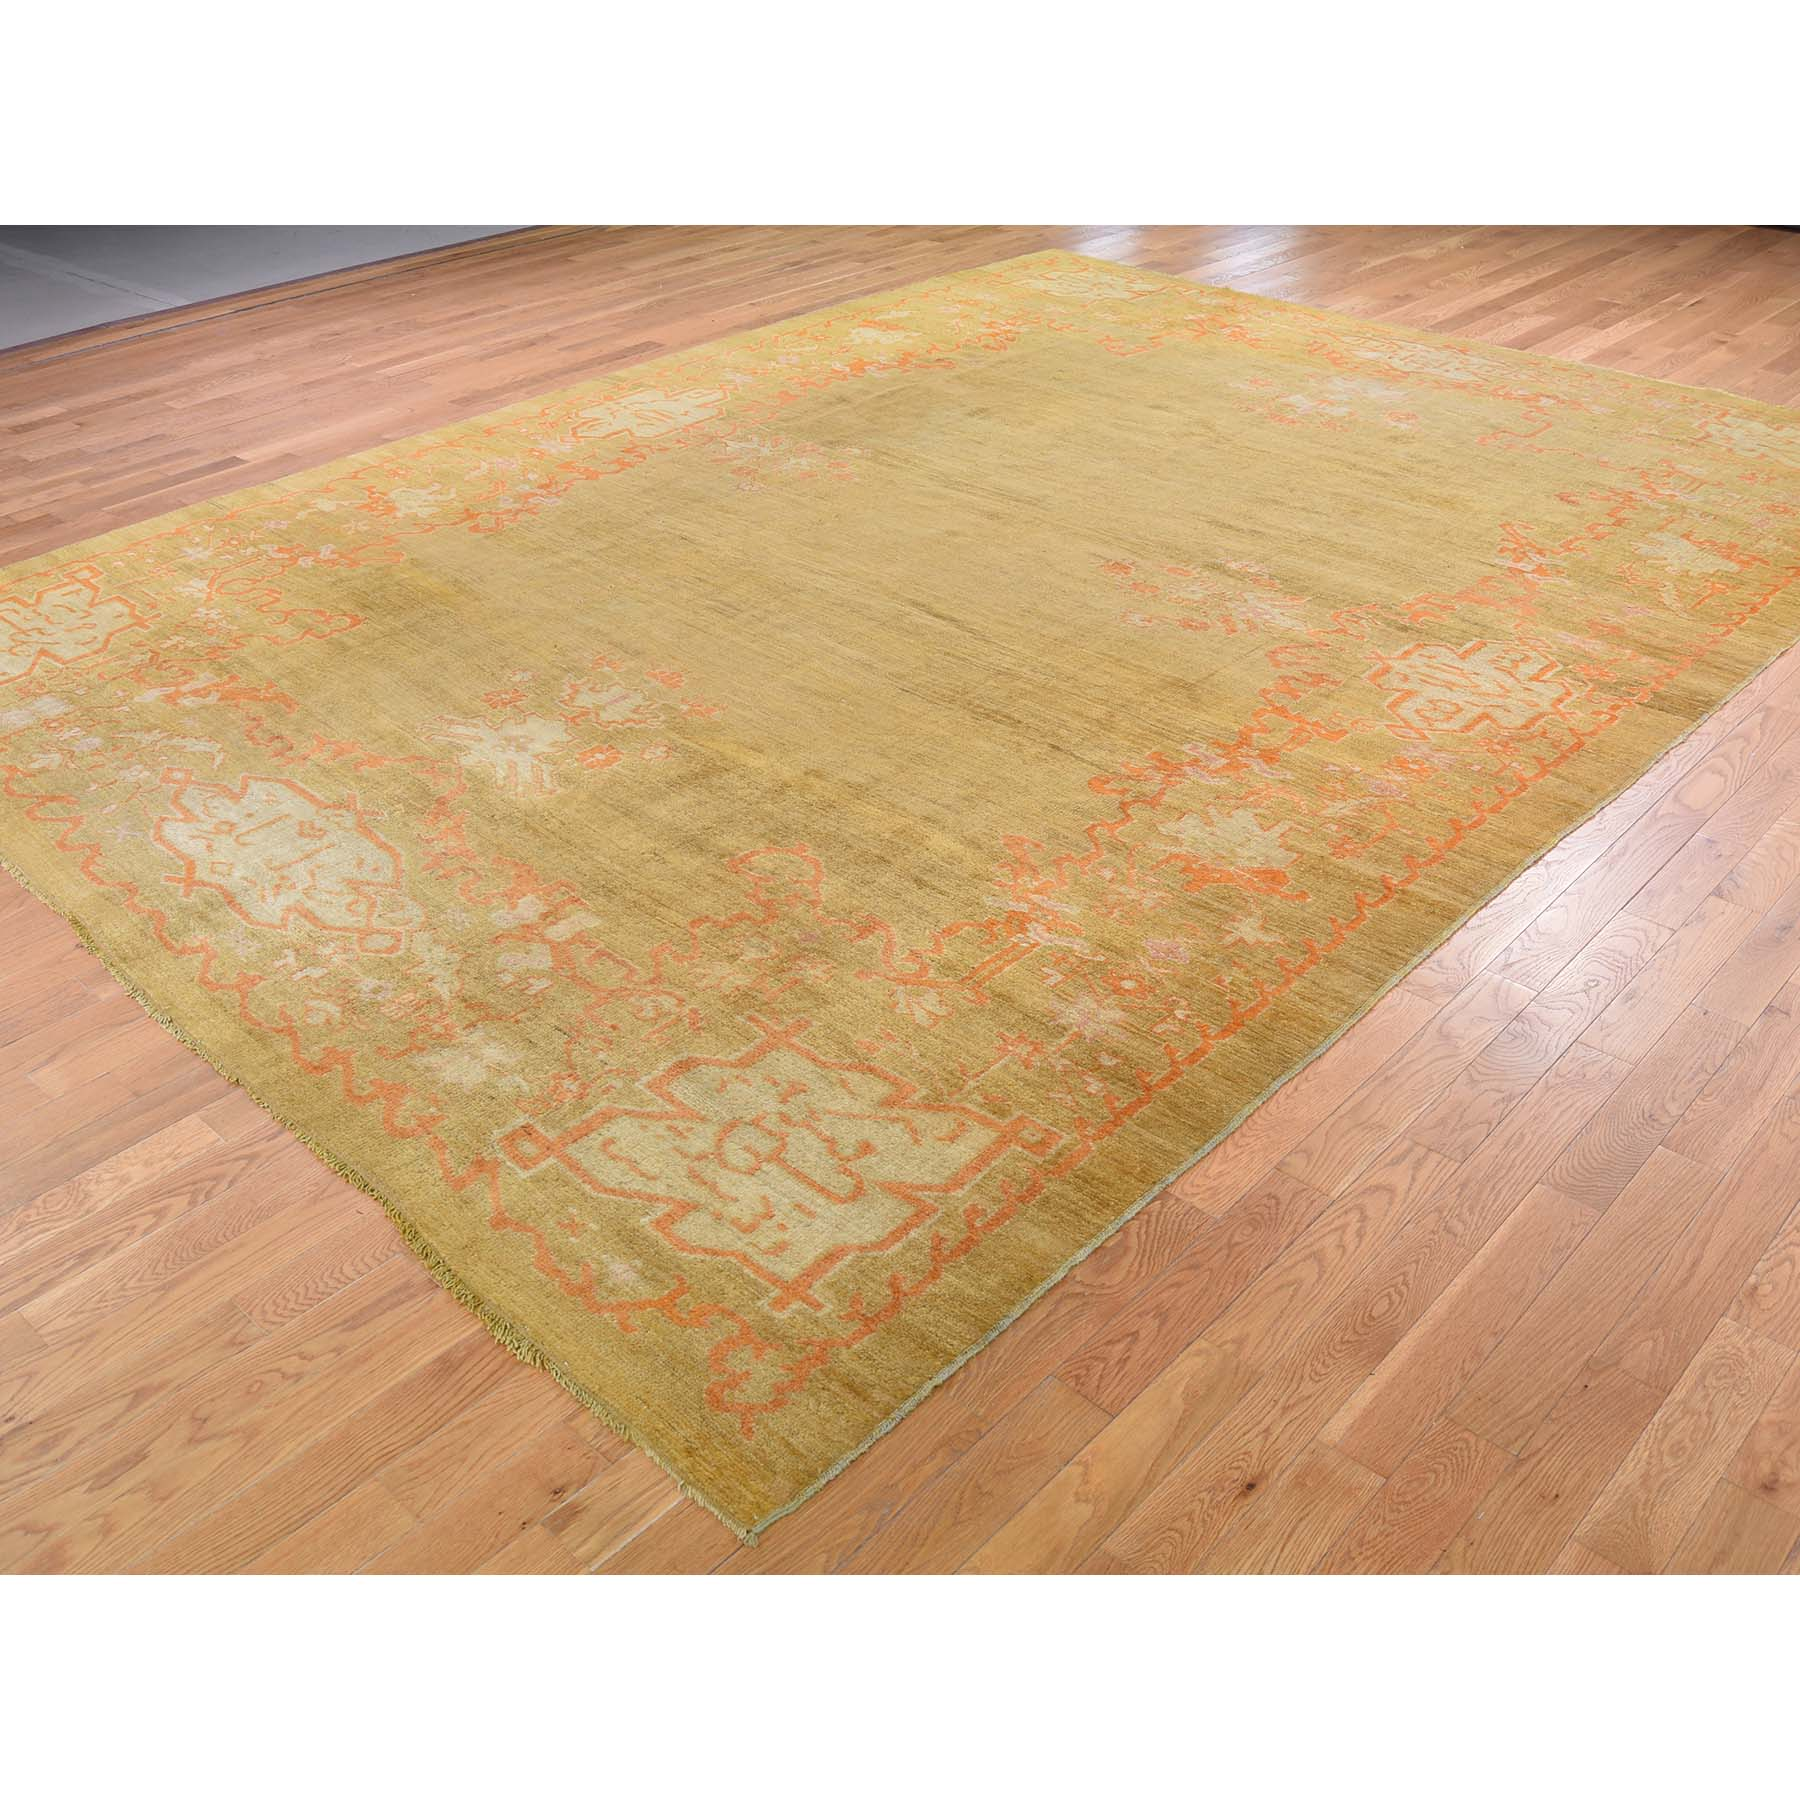 """10'2""""x13'6"""" Antique Turkish Oushak Even Wear Pure Wool Hand-Knotted Oriental Rug"""